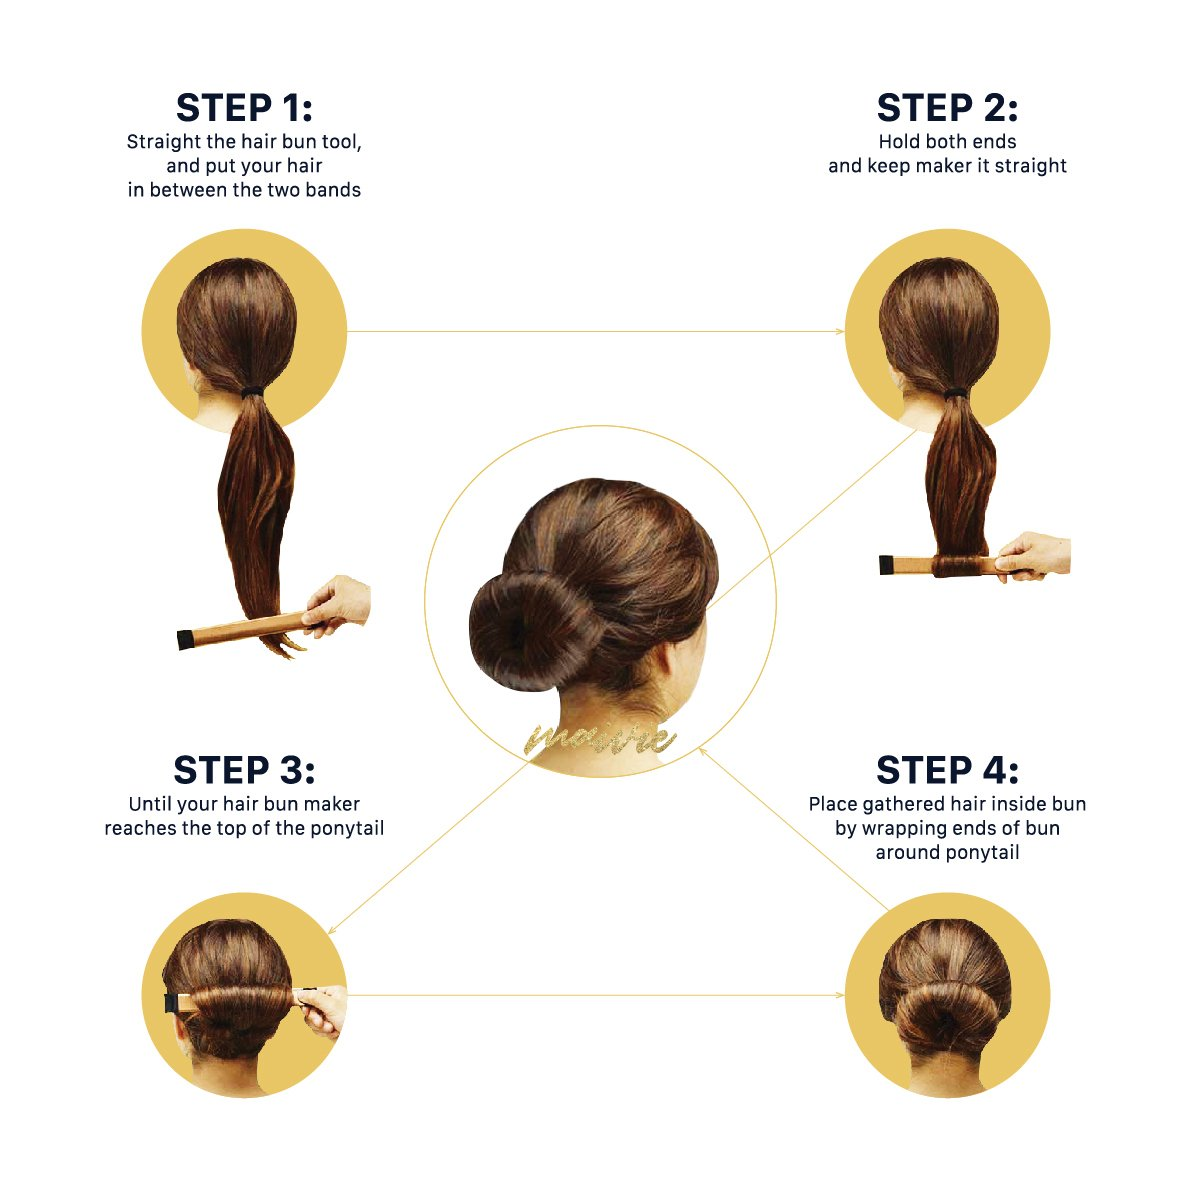 Hair Buns Maker - Fast Messy Perfect Sock Bun Magic Curler Clip French Donut Twist Shaper - Easy DIY Accessories Styling Tool for Women Girls - 3 PCS (Black, Blonde, Brown color) and 1 Hair Tie by Maivie (Image #7)